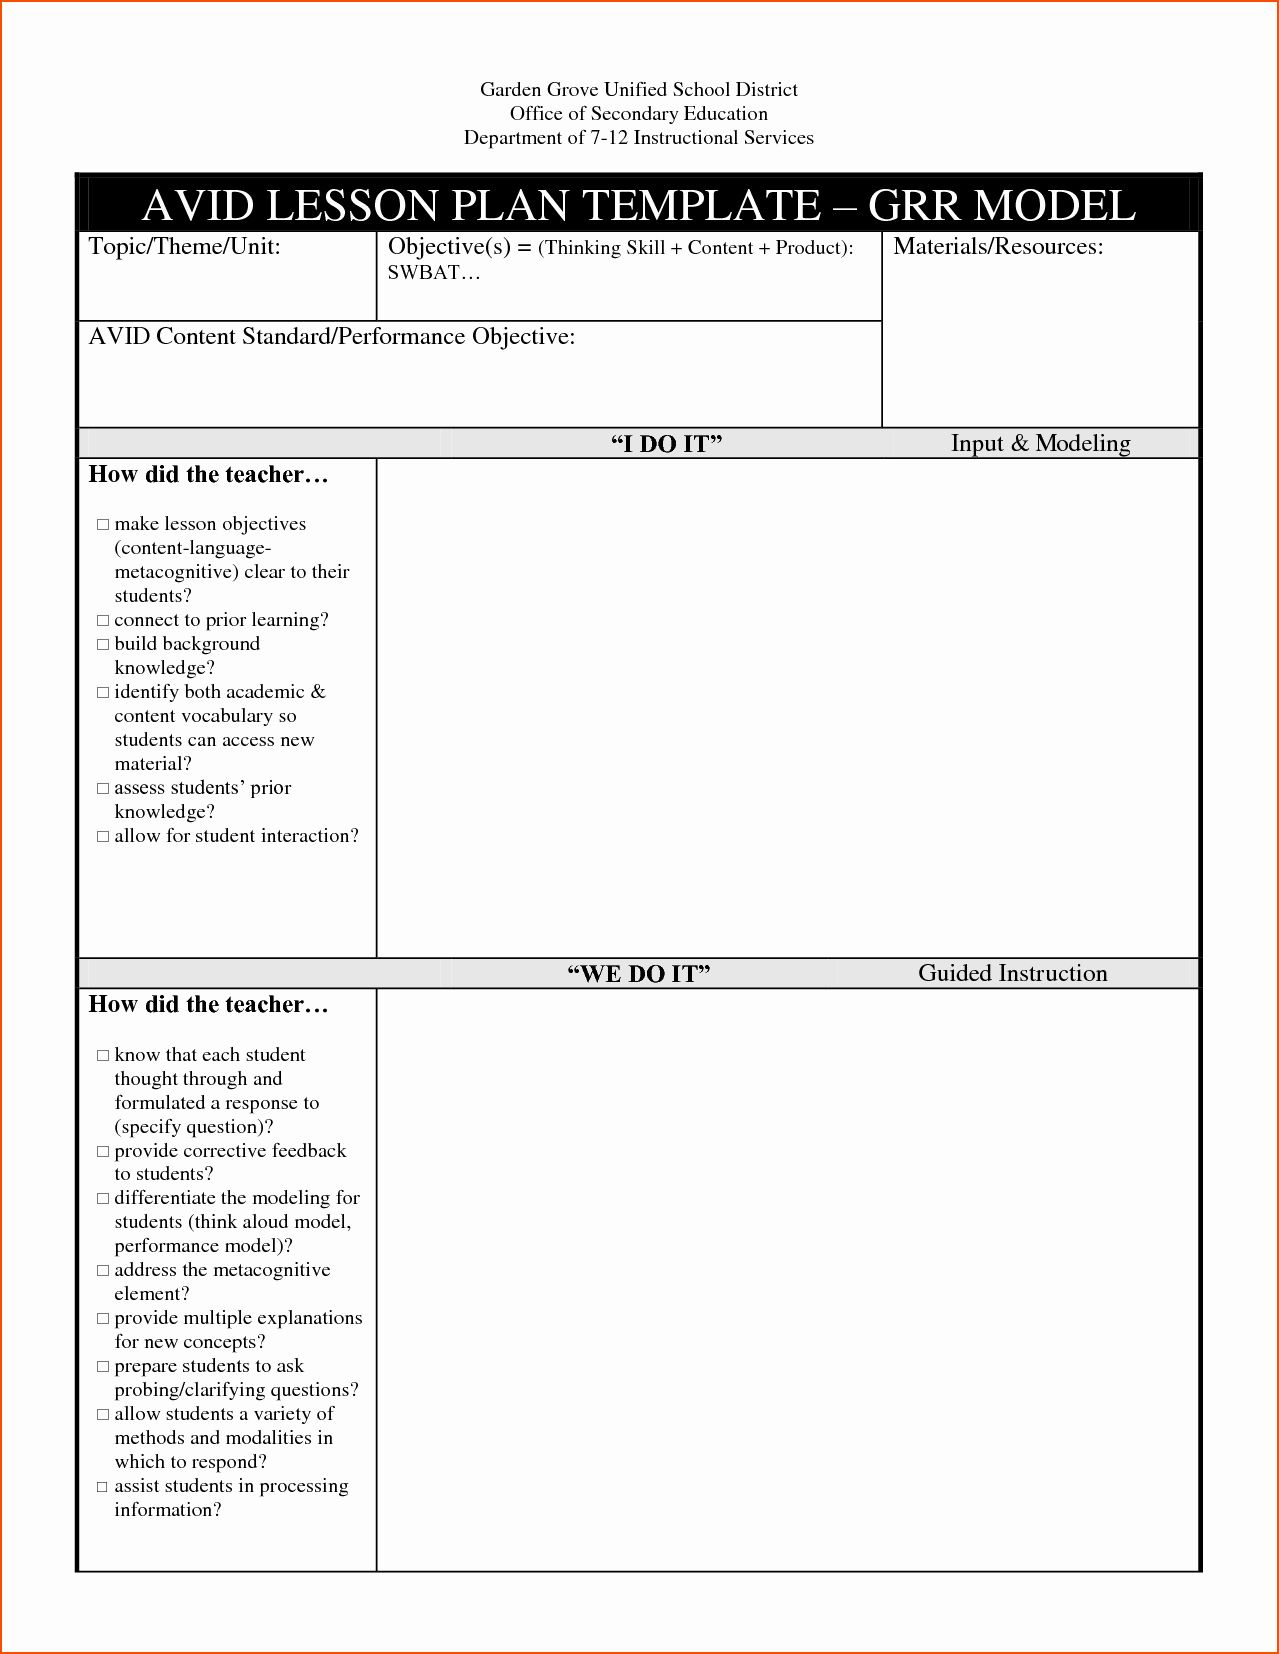 Tiered Lesson Plan Template Fresh Tiered Lesson Plan Template Doc Pictures Sludgeport High School Lesson Plans Lesson Plan Templates Math Lesson Plans Template 21st century lesson plan template